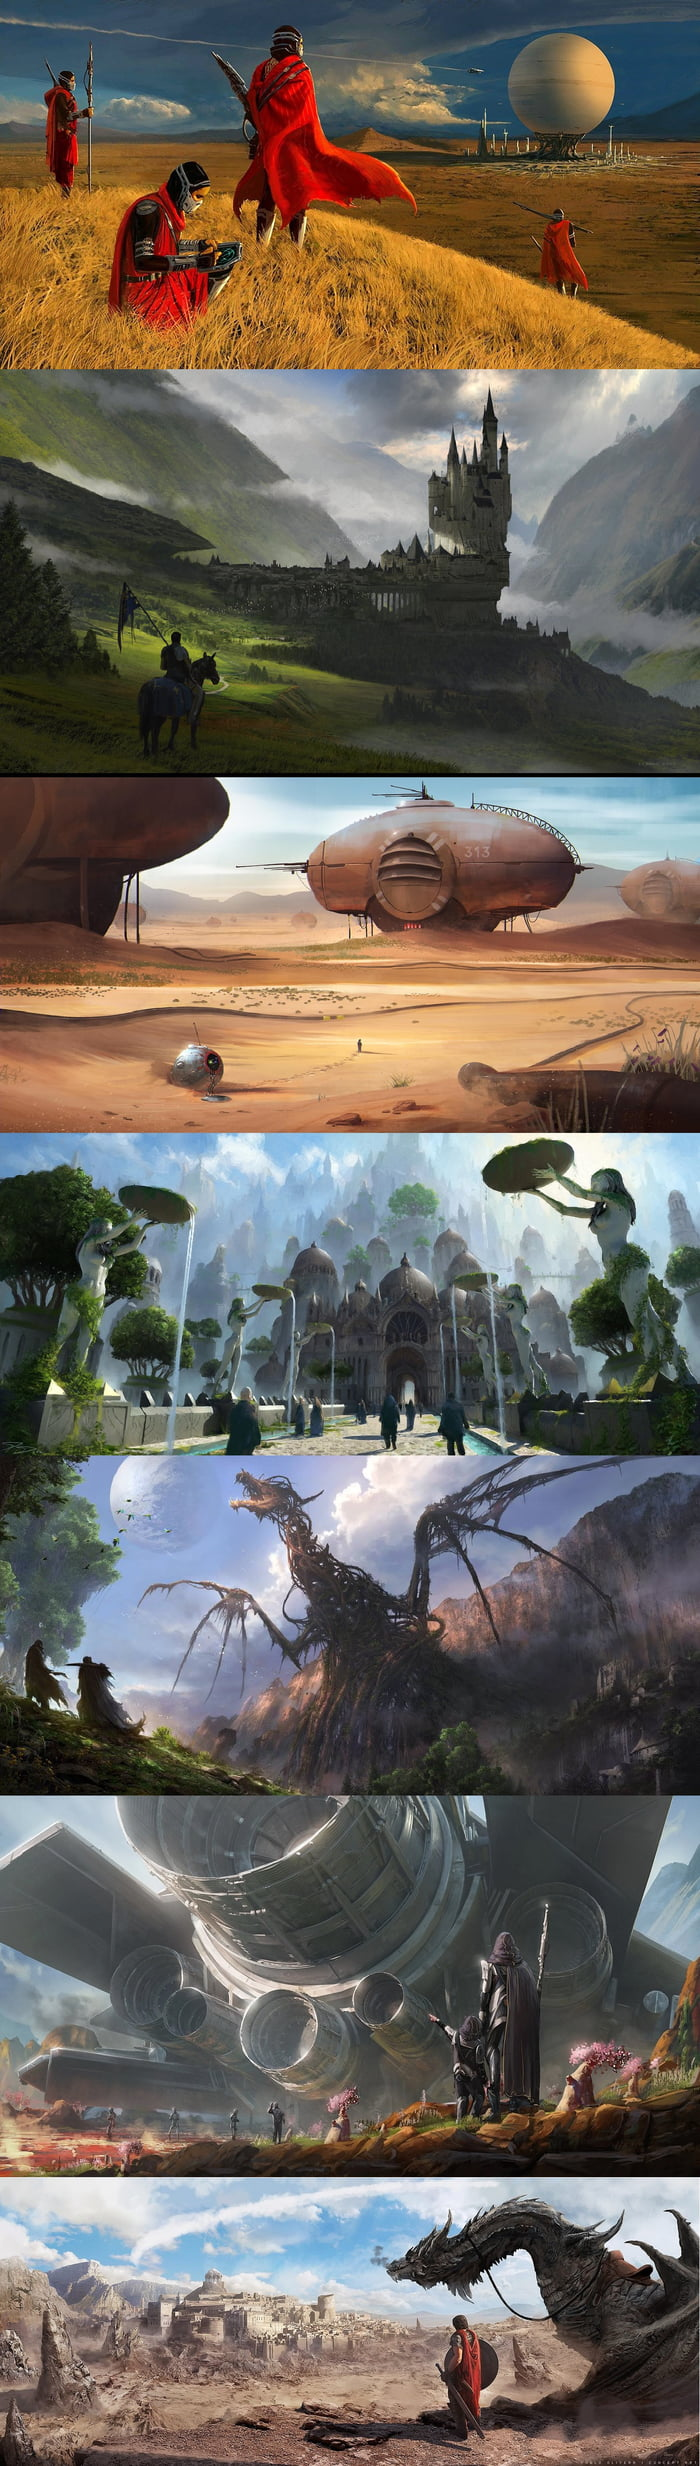 You into game development, and need an inspiration for the enviroment of your game? Or writing a fantasy/scifi story? Here, take this art and build the greatest roleplaying game world has ever seen.